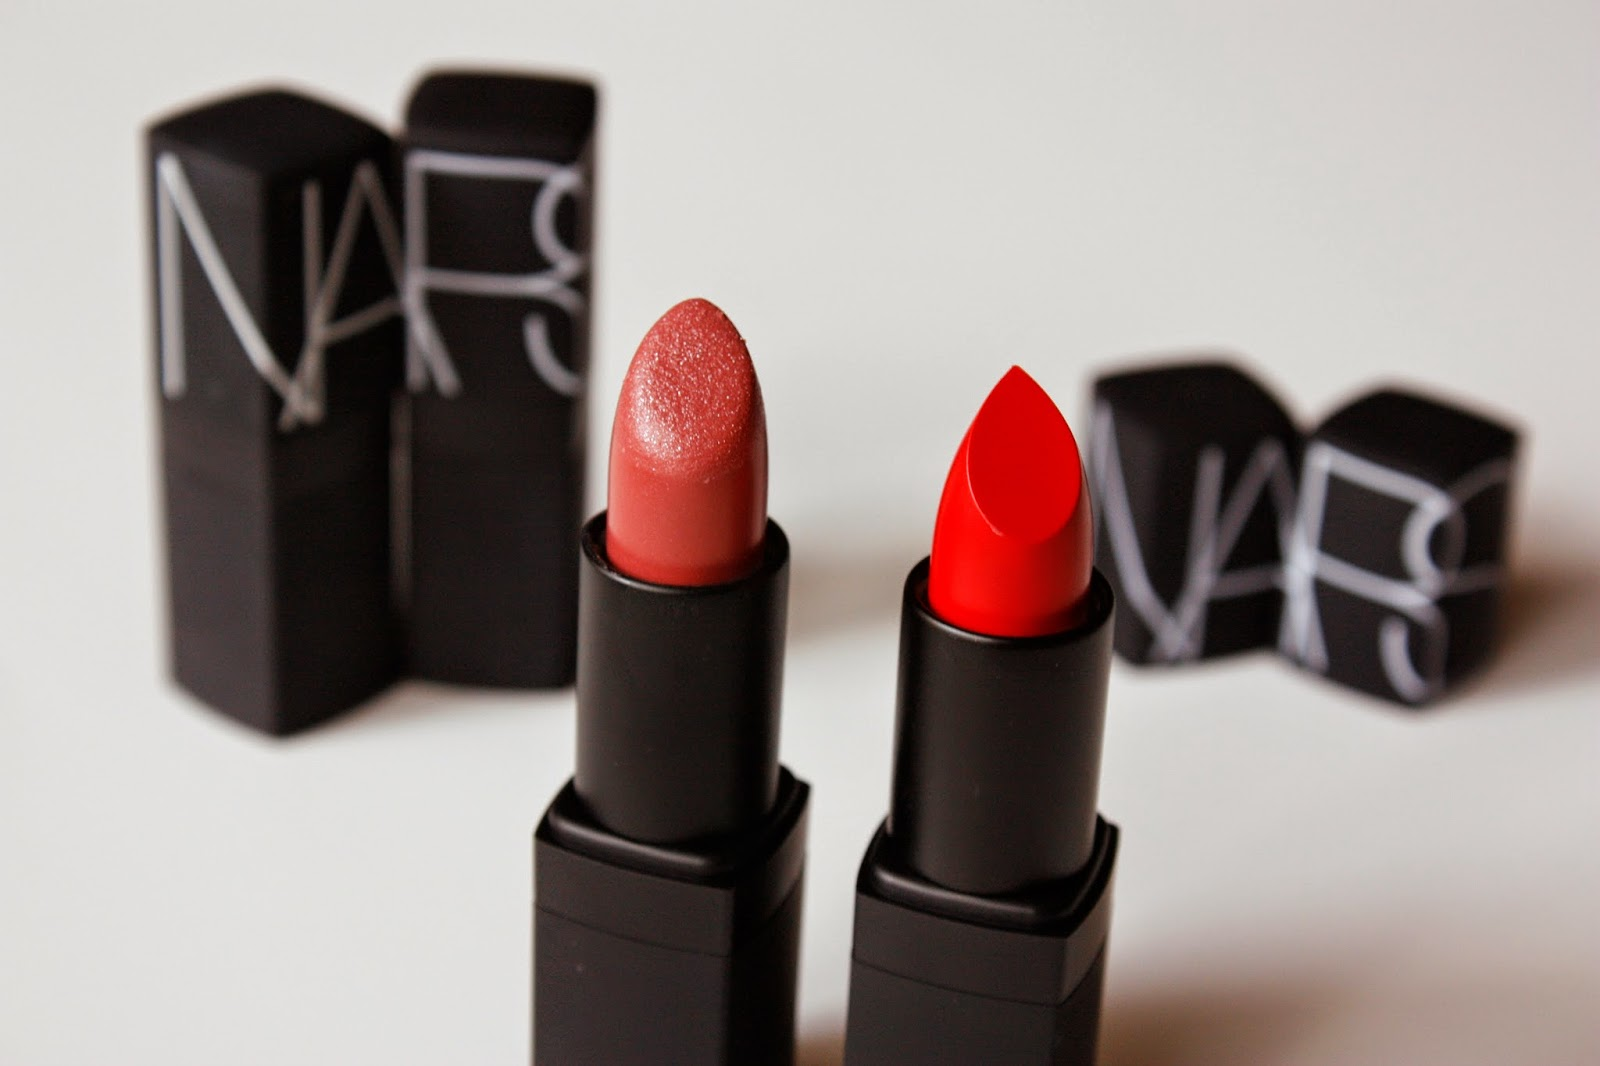 Nars Jungle Red Lipstick Mayflower was the first shade